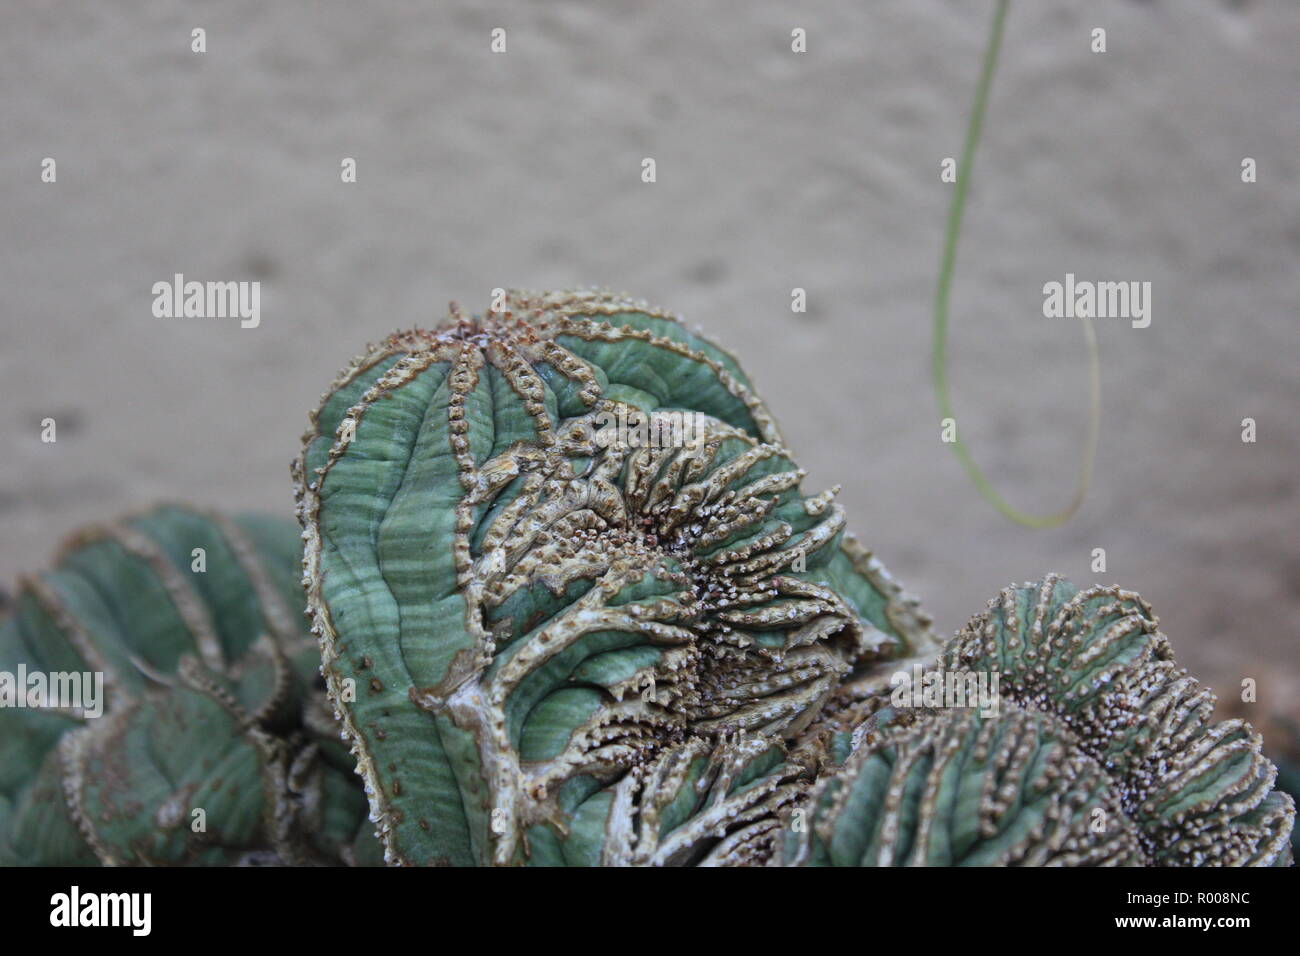 Sea urchin euphorbia , Euphorbia obesa cristata, as cultivated ornamental cactus and succulent desert plant growing in an arid environment. - Stock Image